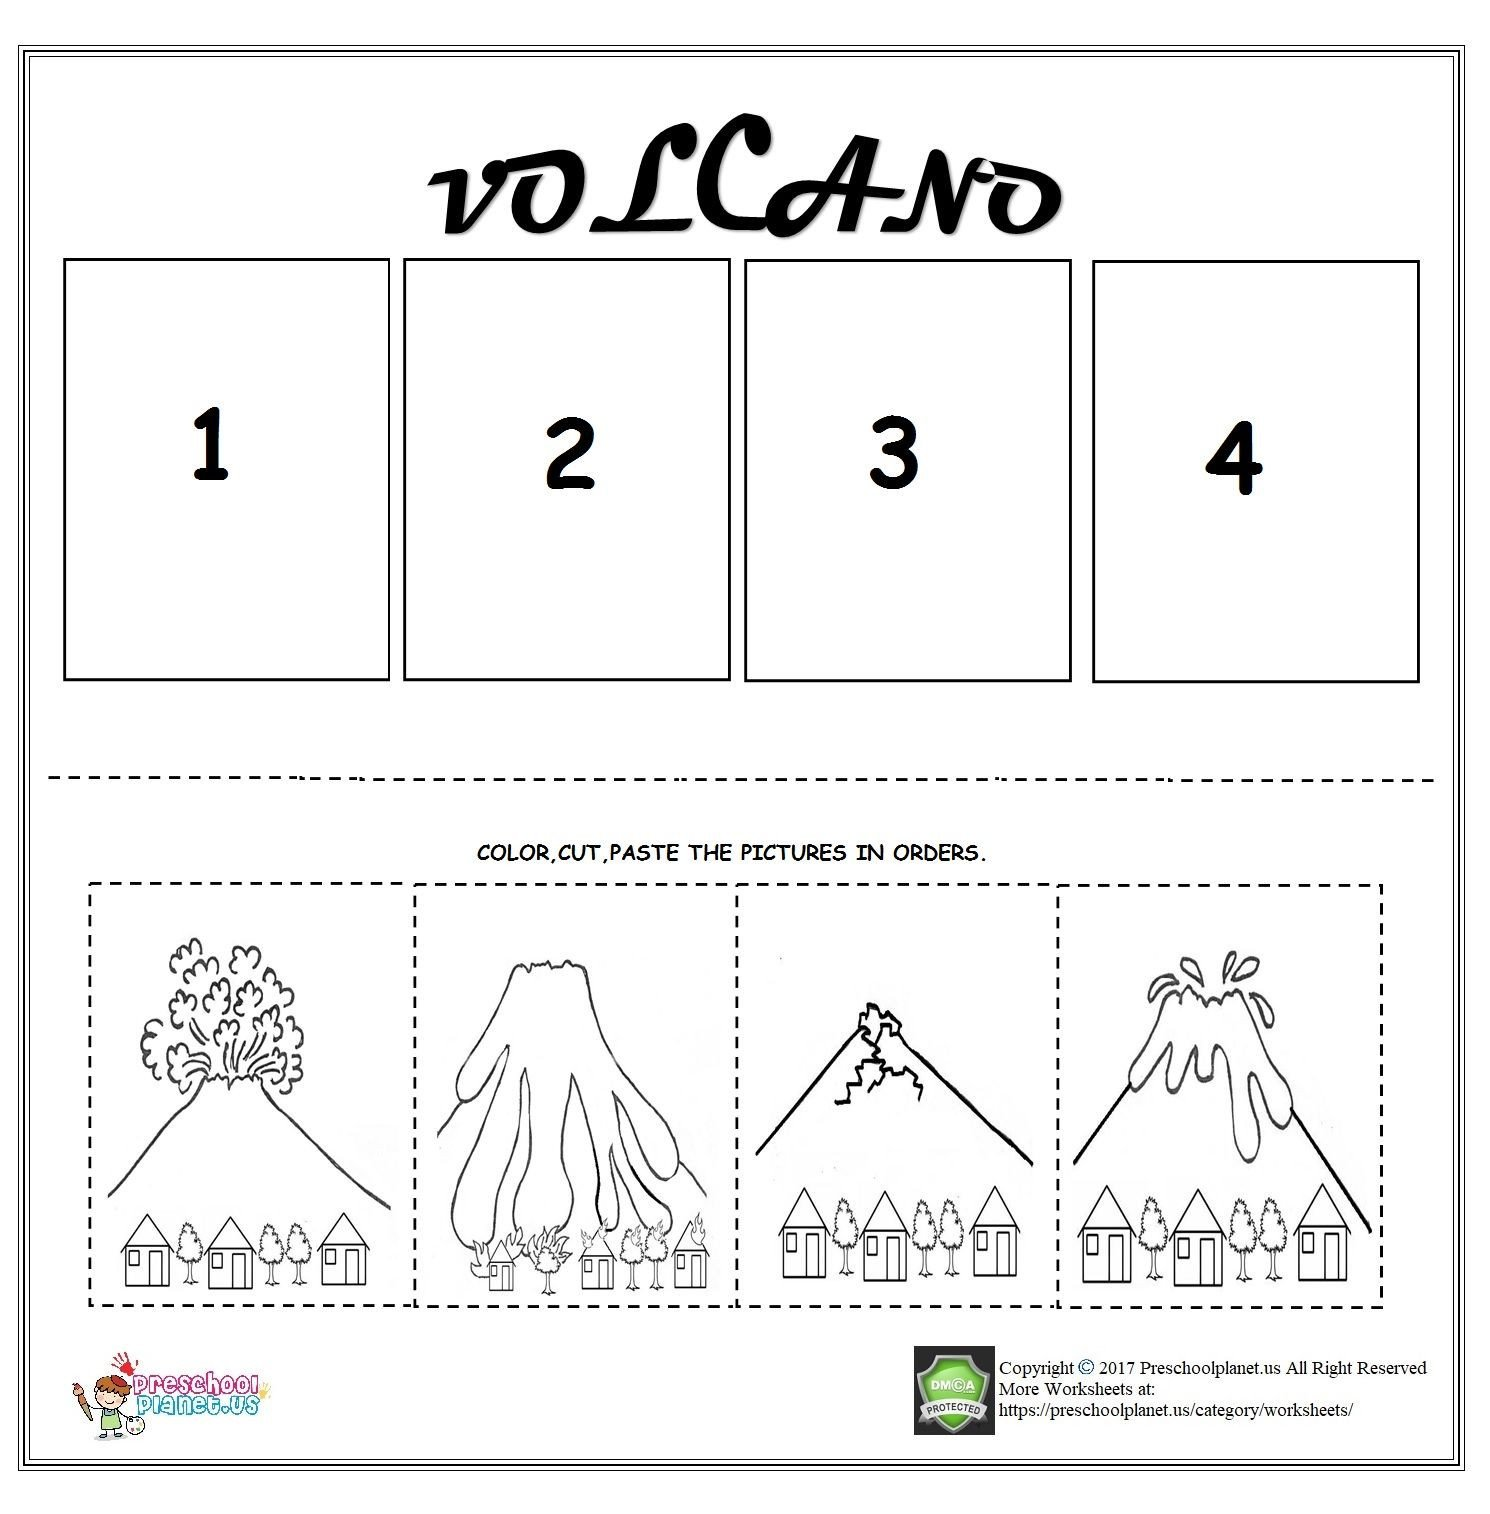 Volcano Worksheet for Kids Volcano Sequencing Worksheet for Kids